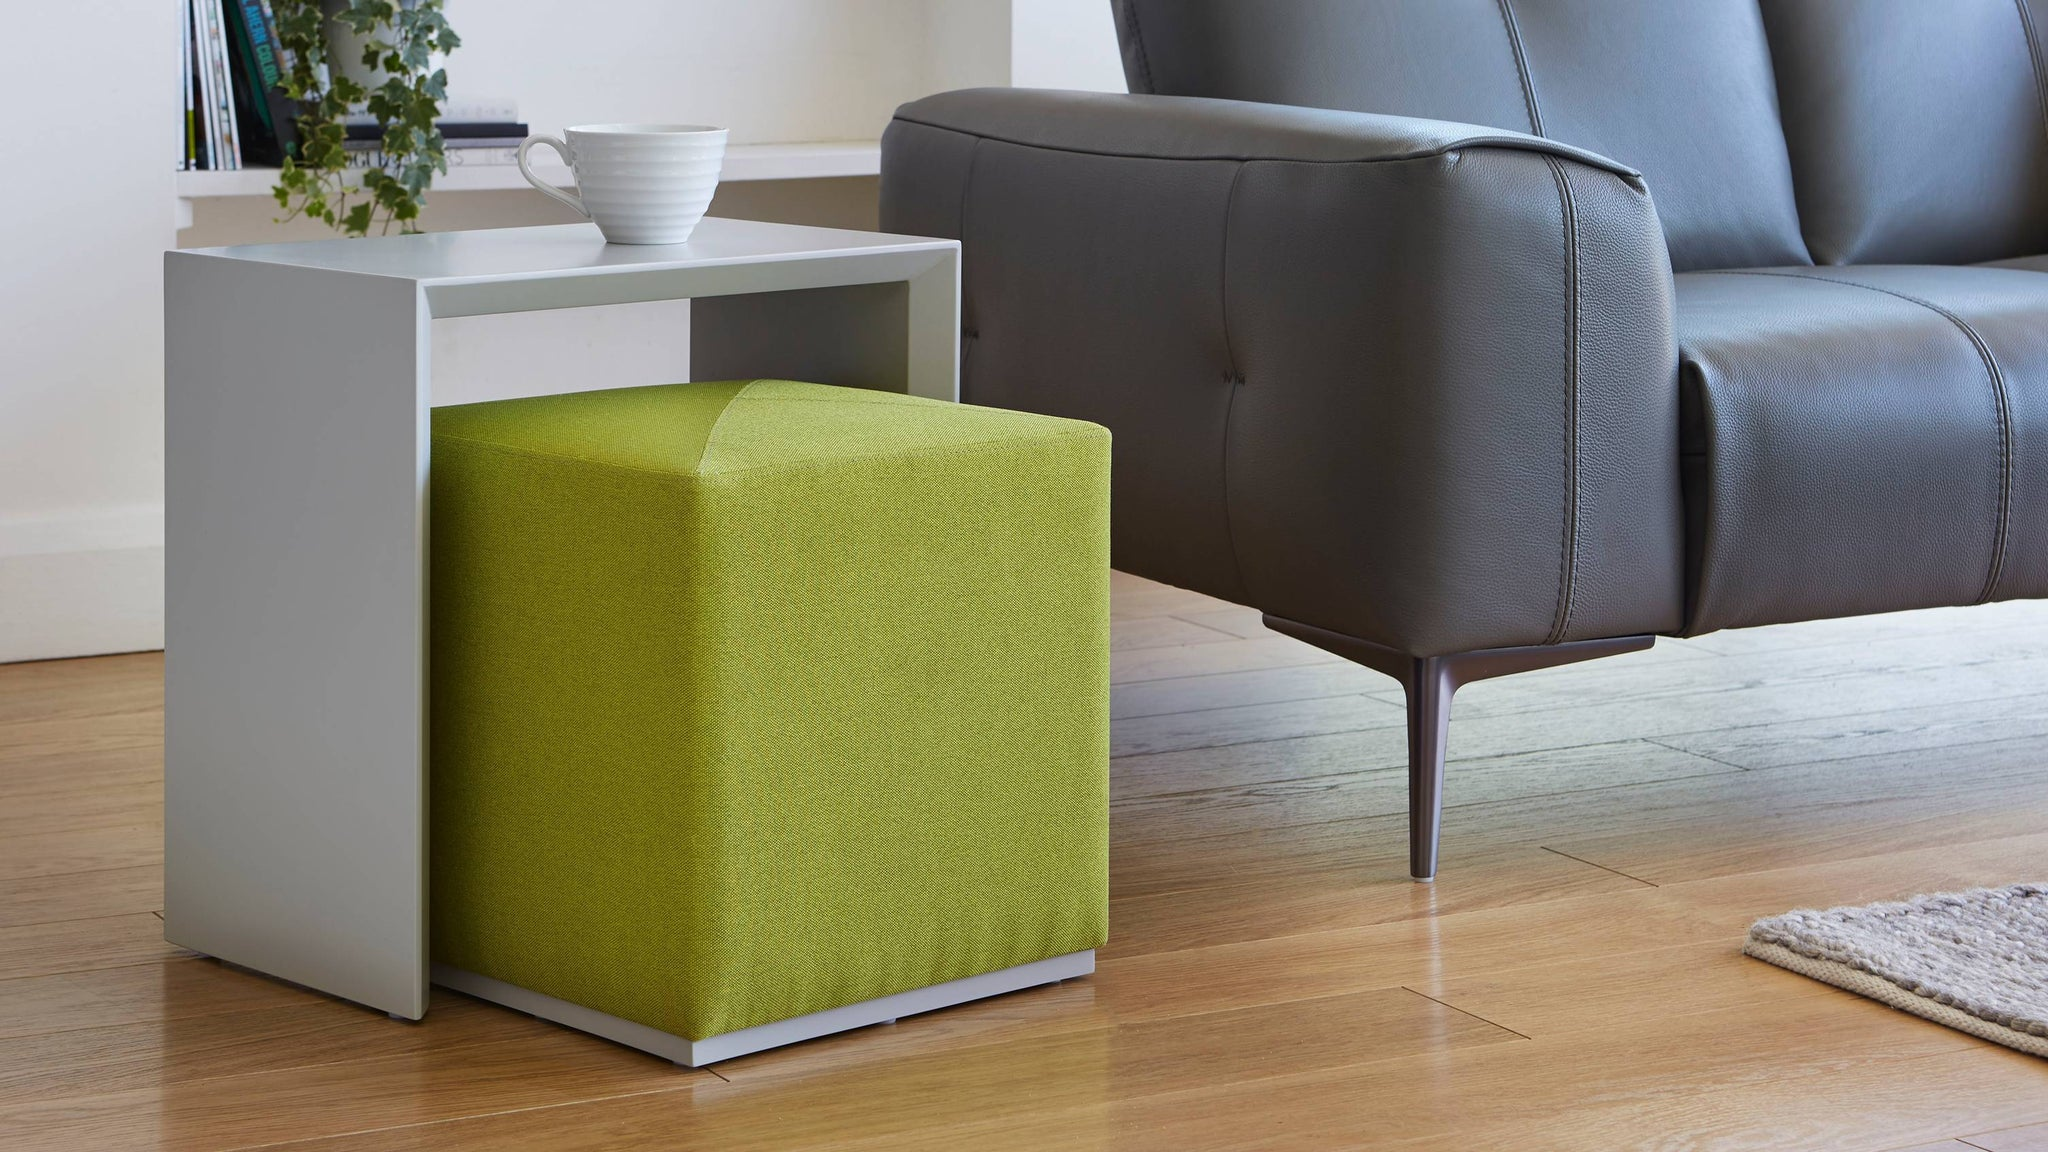 Matt grey and green side table